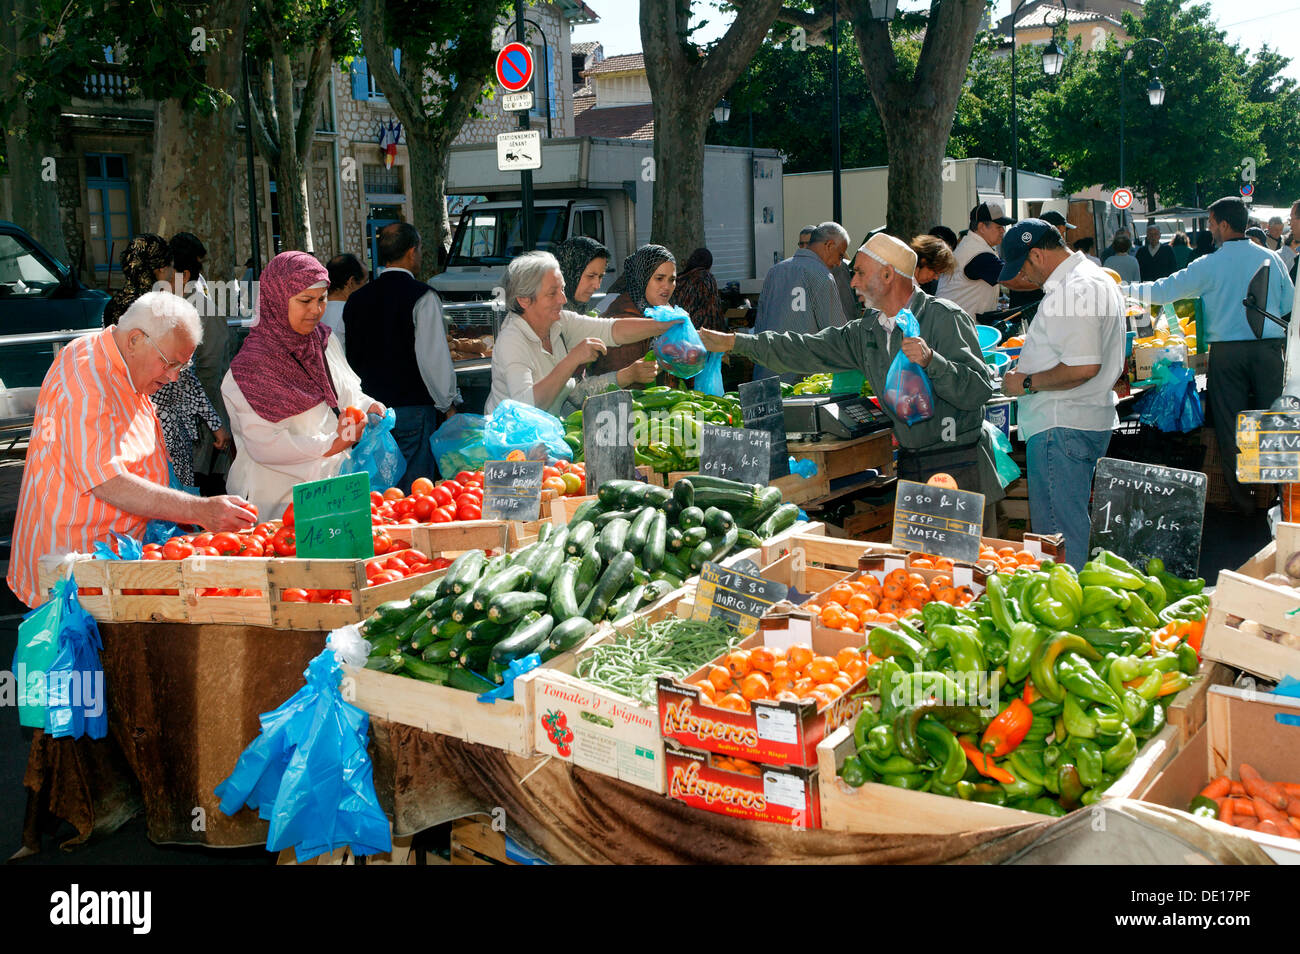 Cavaillon photos cavaillon images alamy - Cuisine du marche cavaillon ...